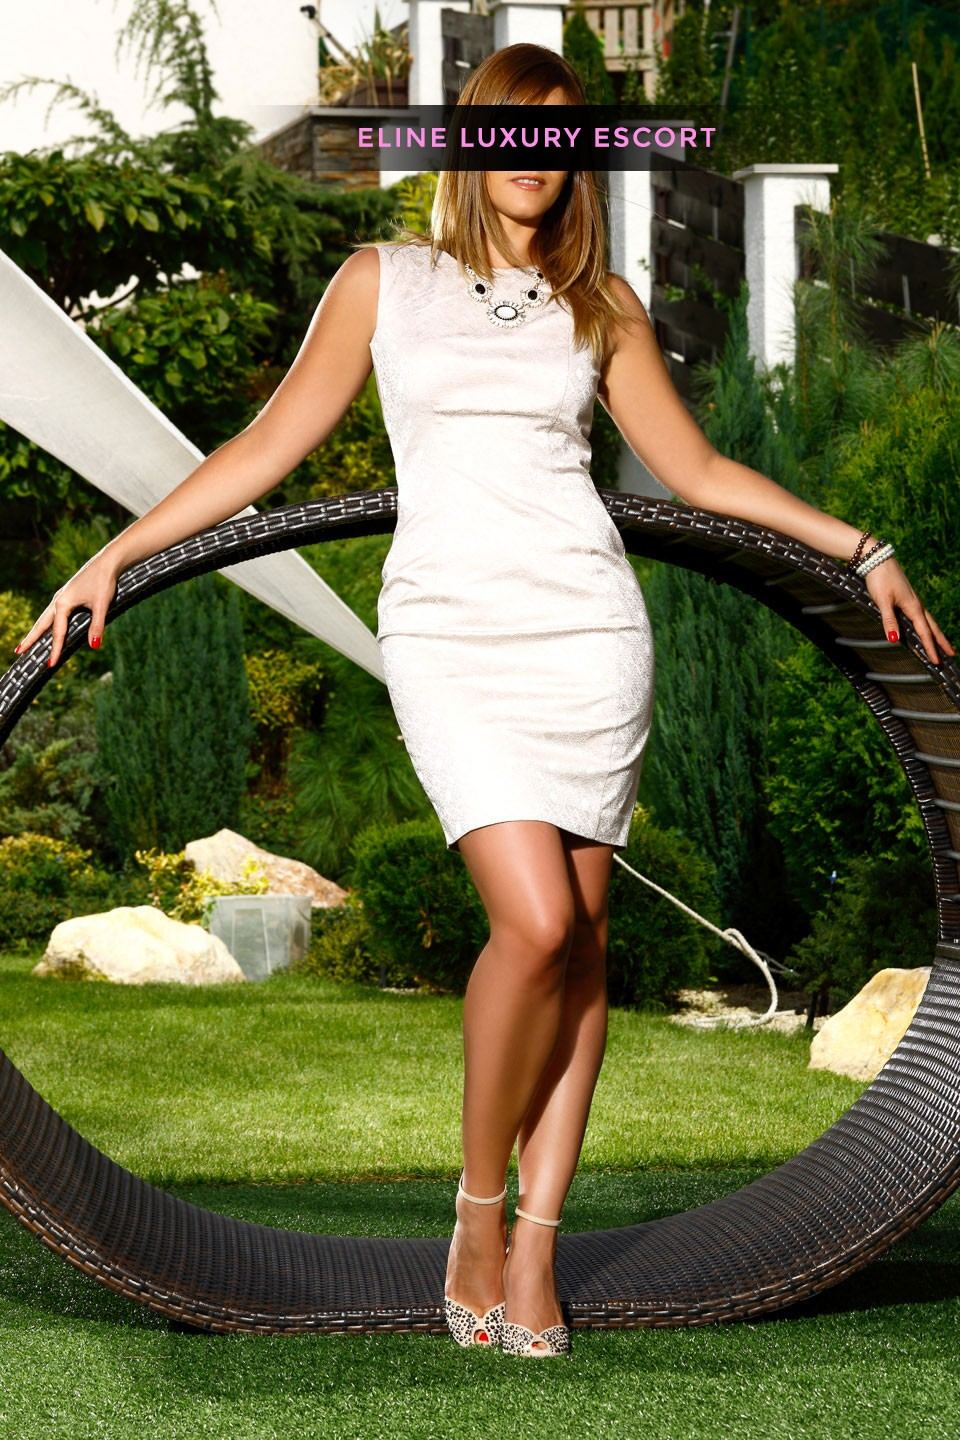 In garden with white dress and white heels